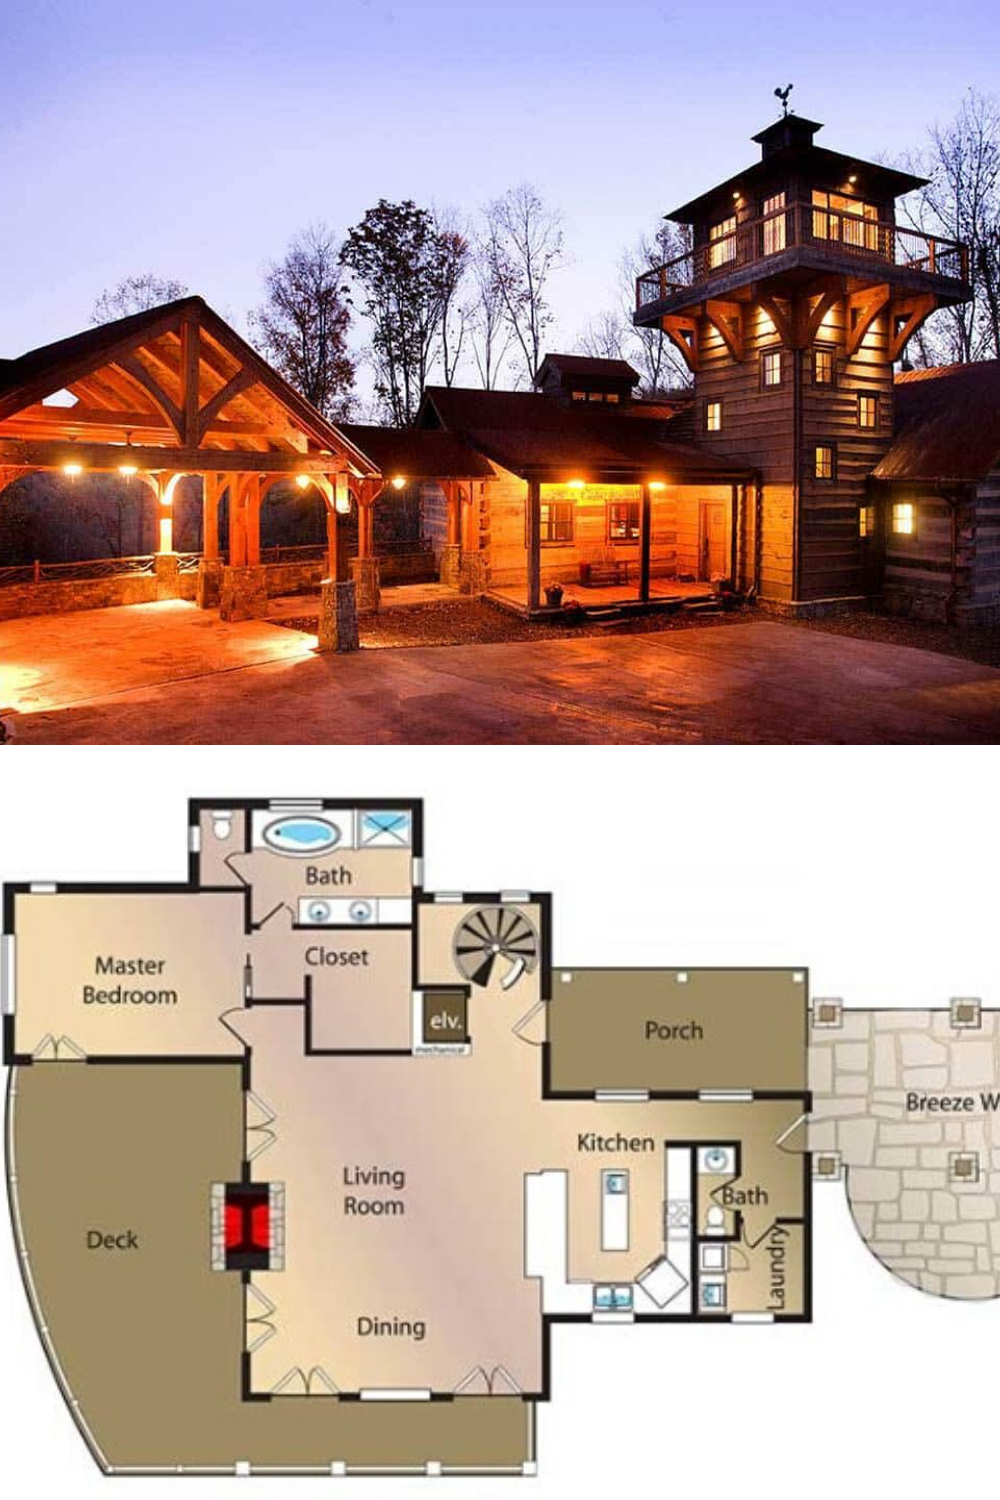 3 Bedroom Single Story Mountain Home With Lookout Tower Floor Plan In 2020 Mountain House Plans Lookout Tower Mansion Floor Plan